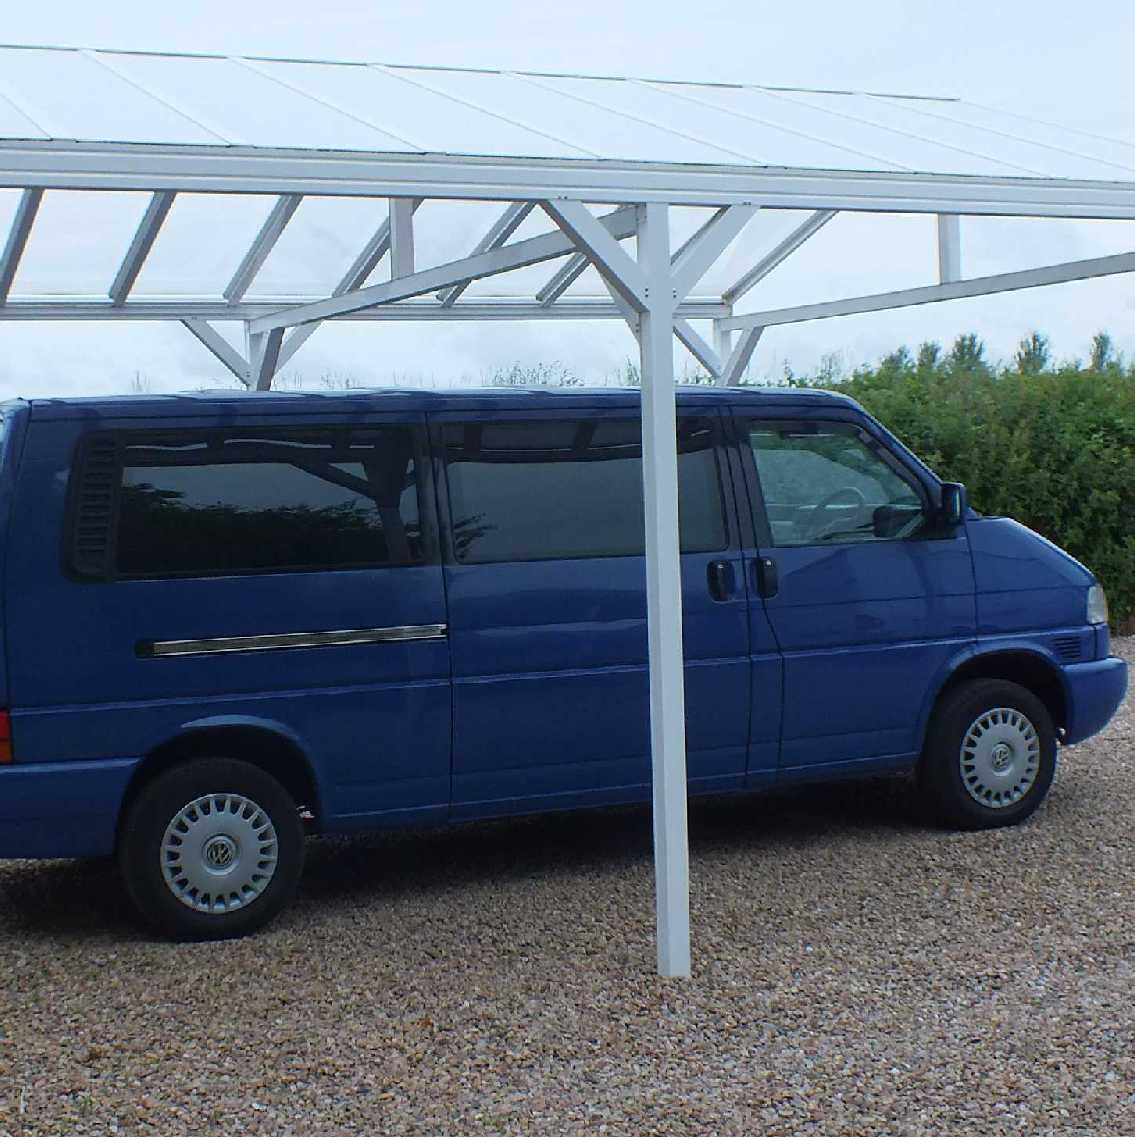 Great deals on Omega Smart Free-Standing, Gable-Roof (type 1) Canopy with 16mm Polycarbonate Glazing - 5.2m (W) x 4.0m (P), (6) Supporting Posts